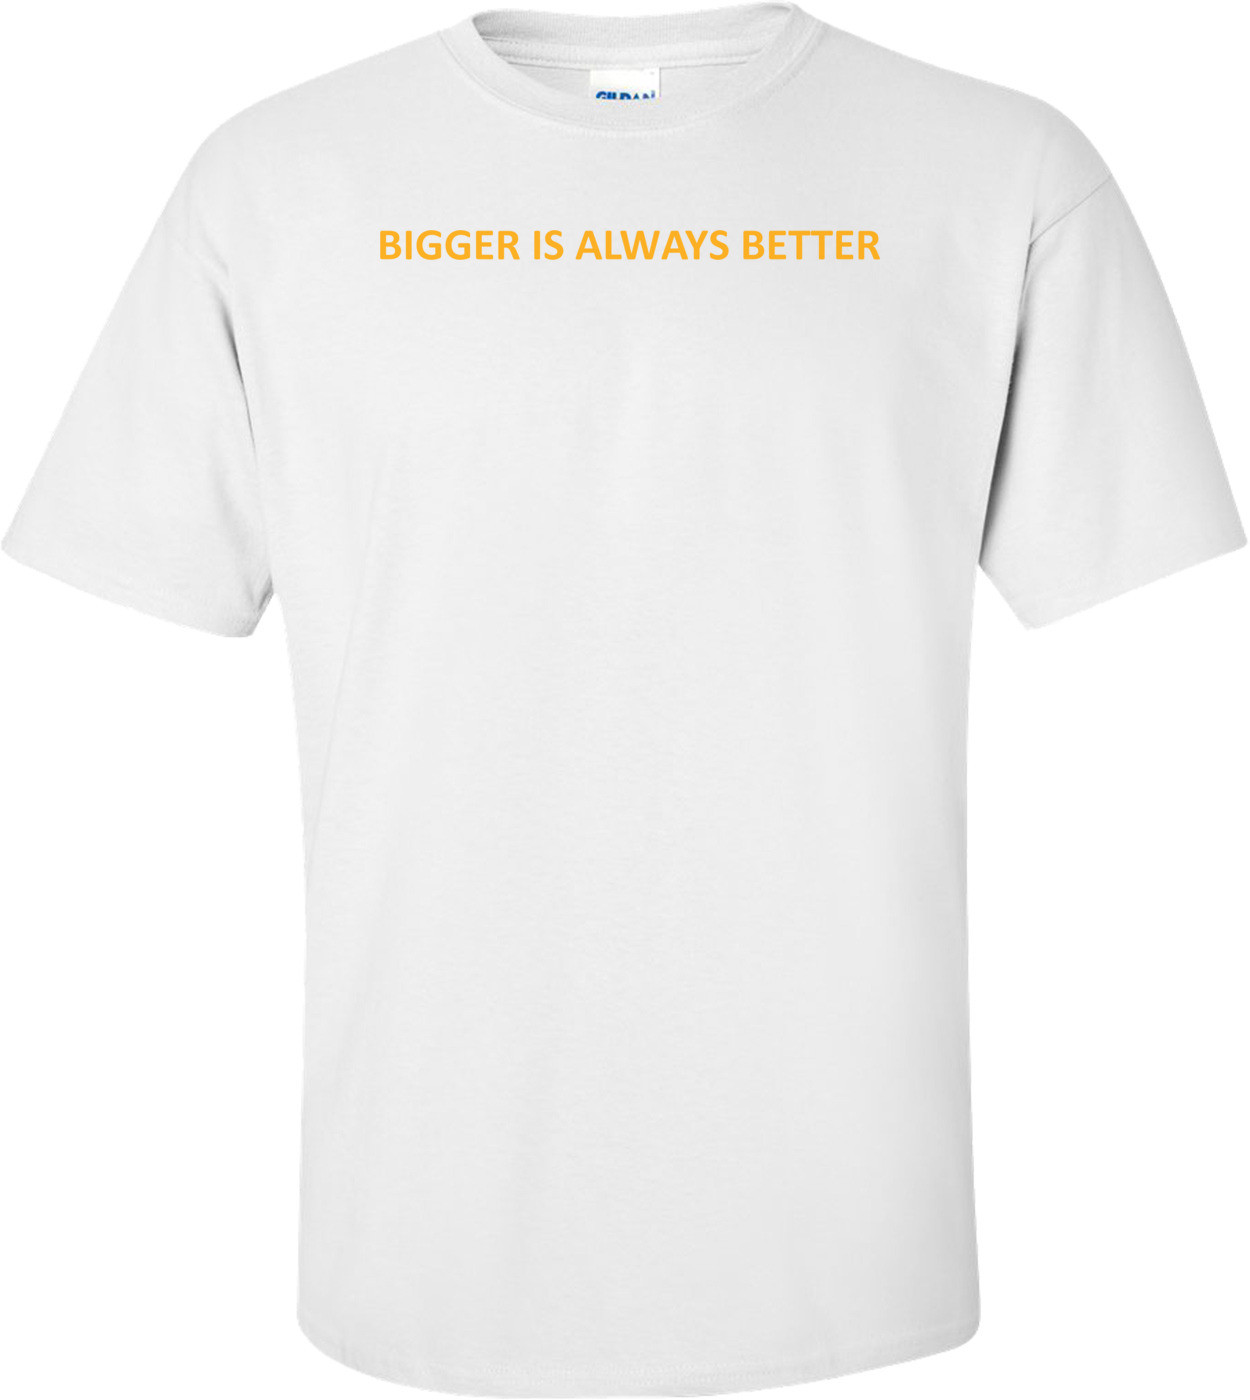 BIGGER IS ALWAYS BETTER Shirt